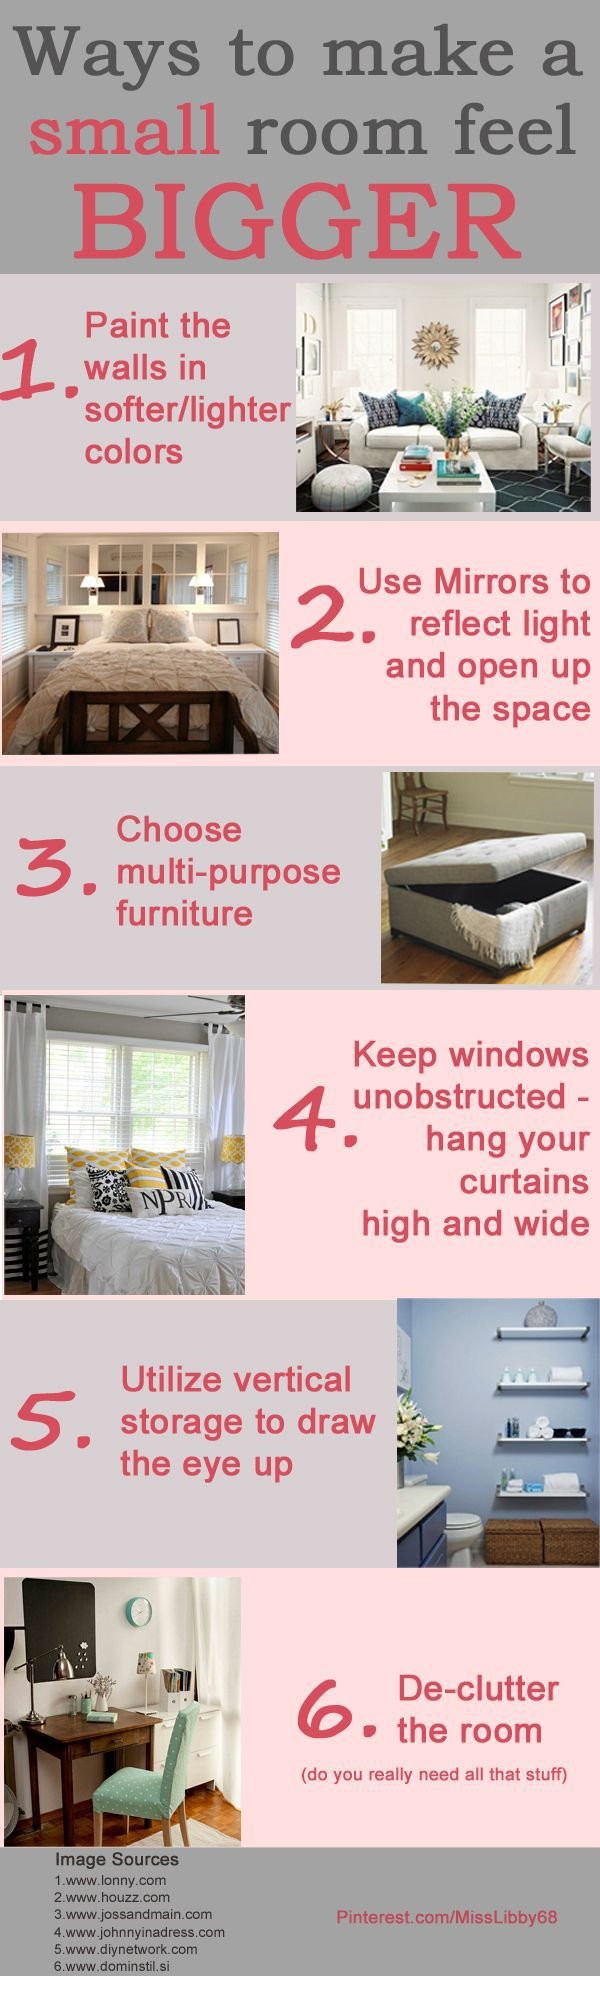 25 Best Ideas About Small Bedroom Organization On Pinterest Storage And Organize S Bedrooms